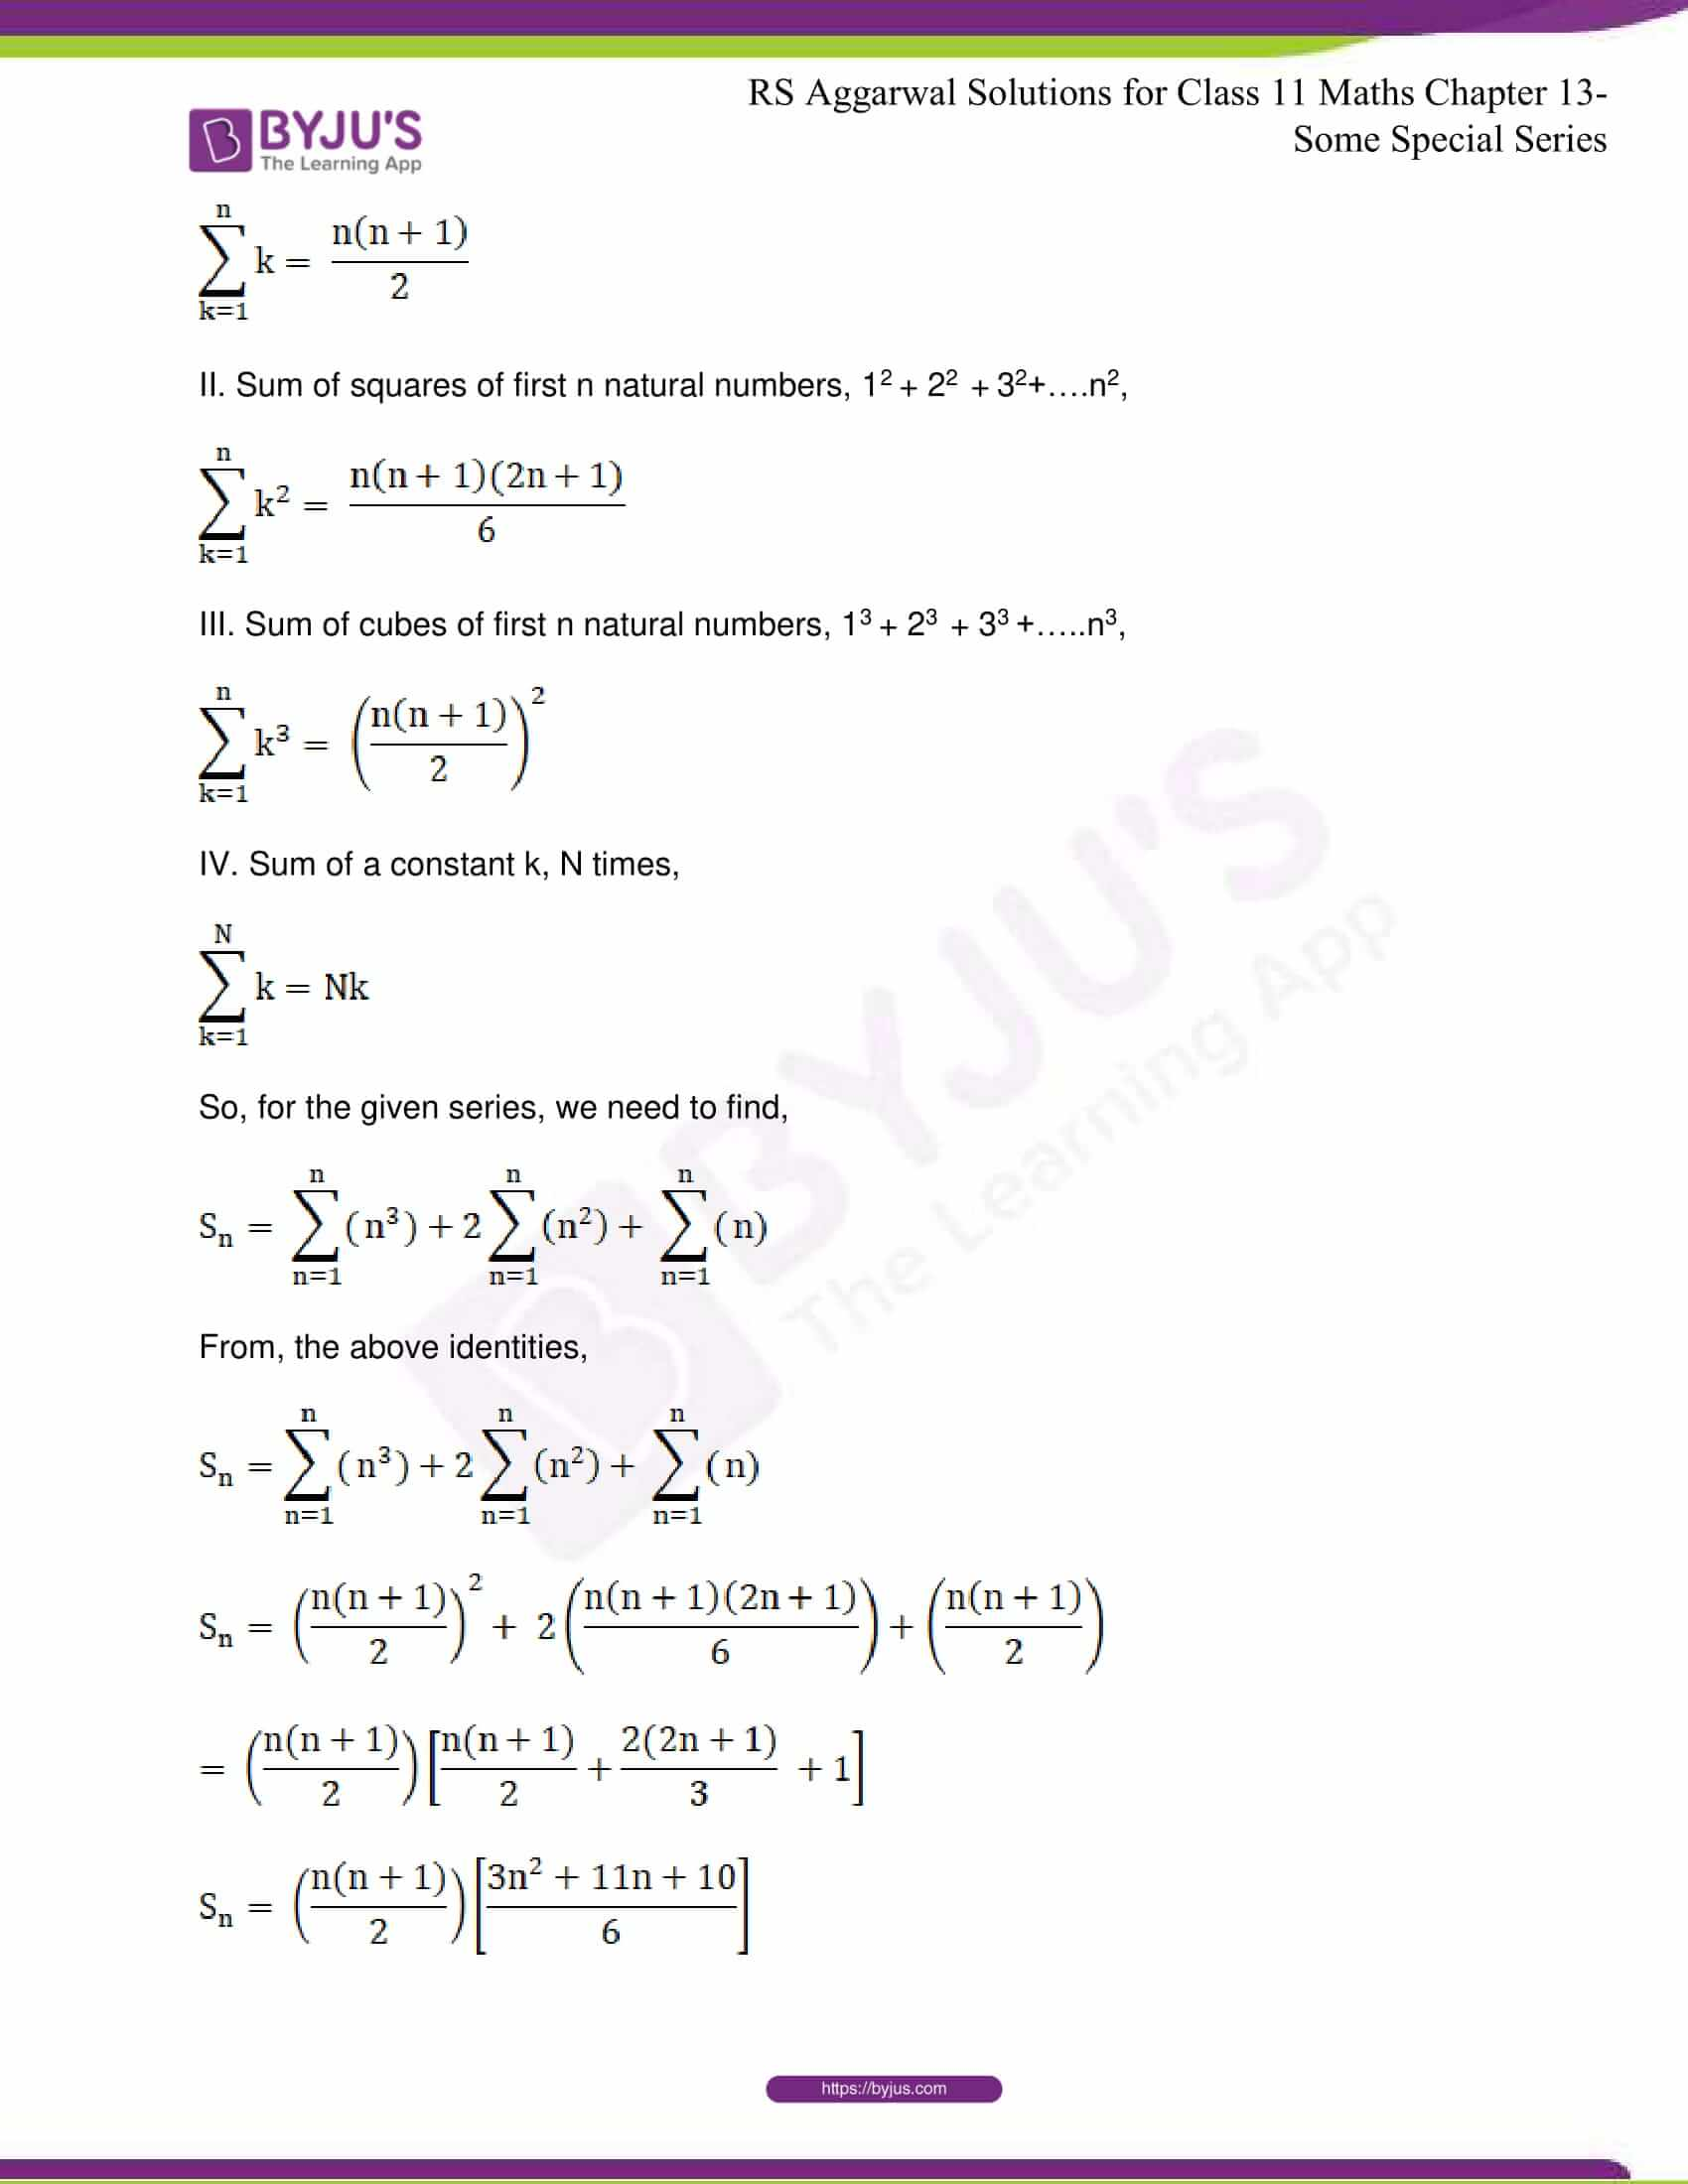 rsaggarwal solutions class 11 maths chapter 13 22